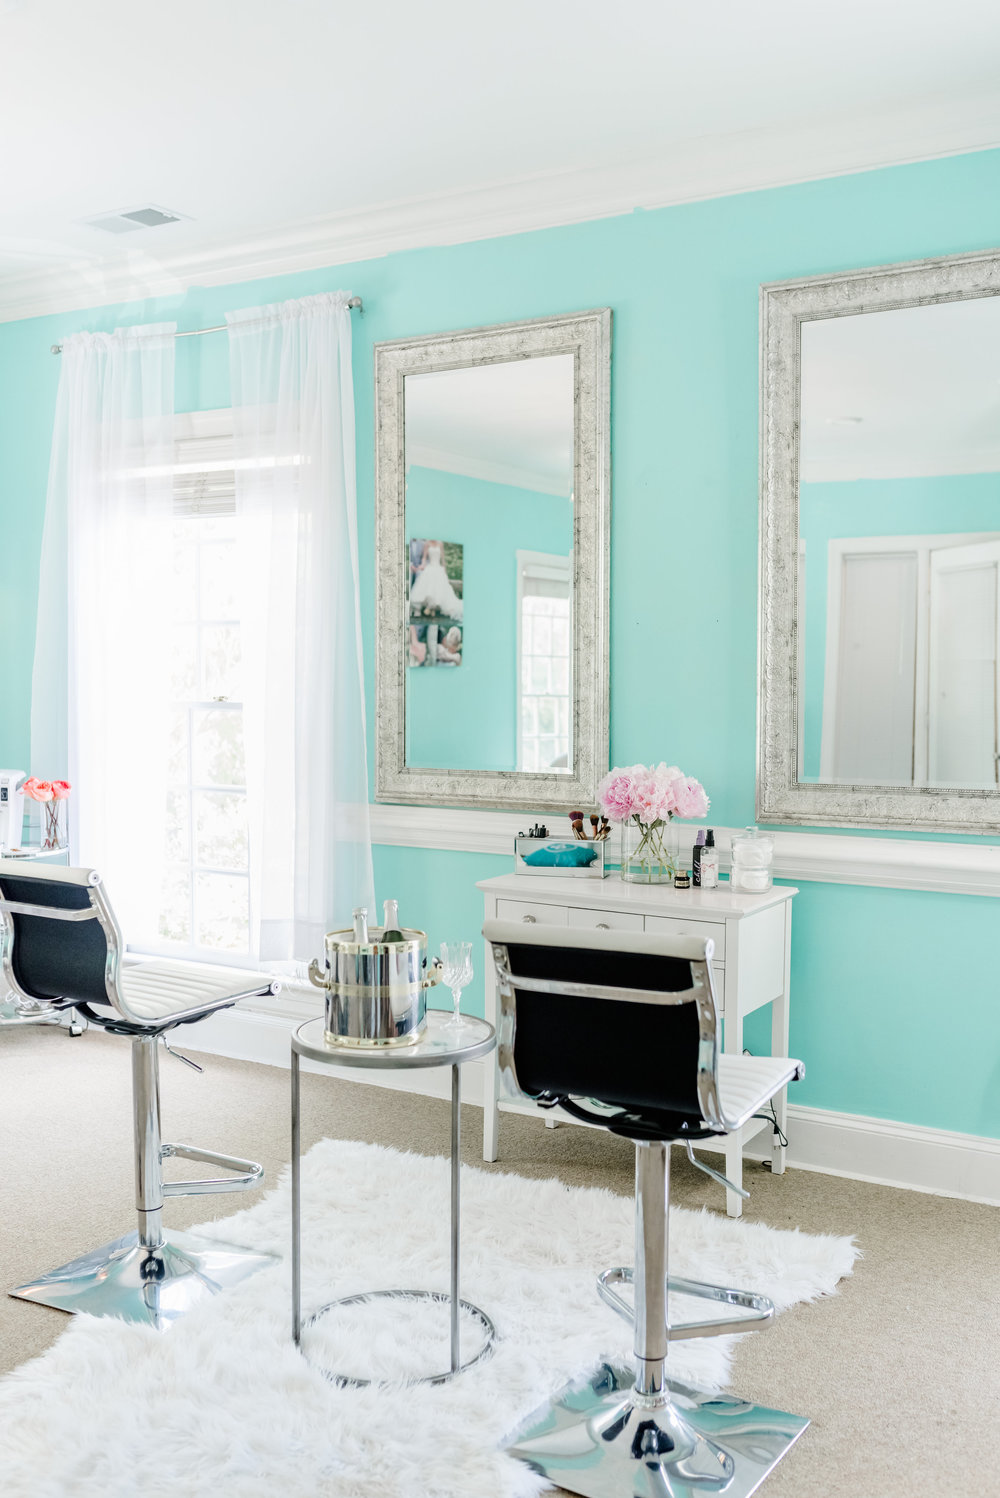 BRIDAL SUITES - More than just a place to get ready. our bridal suites come complete with a coffee/ juice bar, gorgeous hooks to hang dresses, hair and makeup stations, full kitchens, and more.